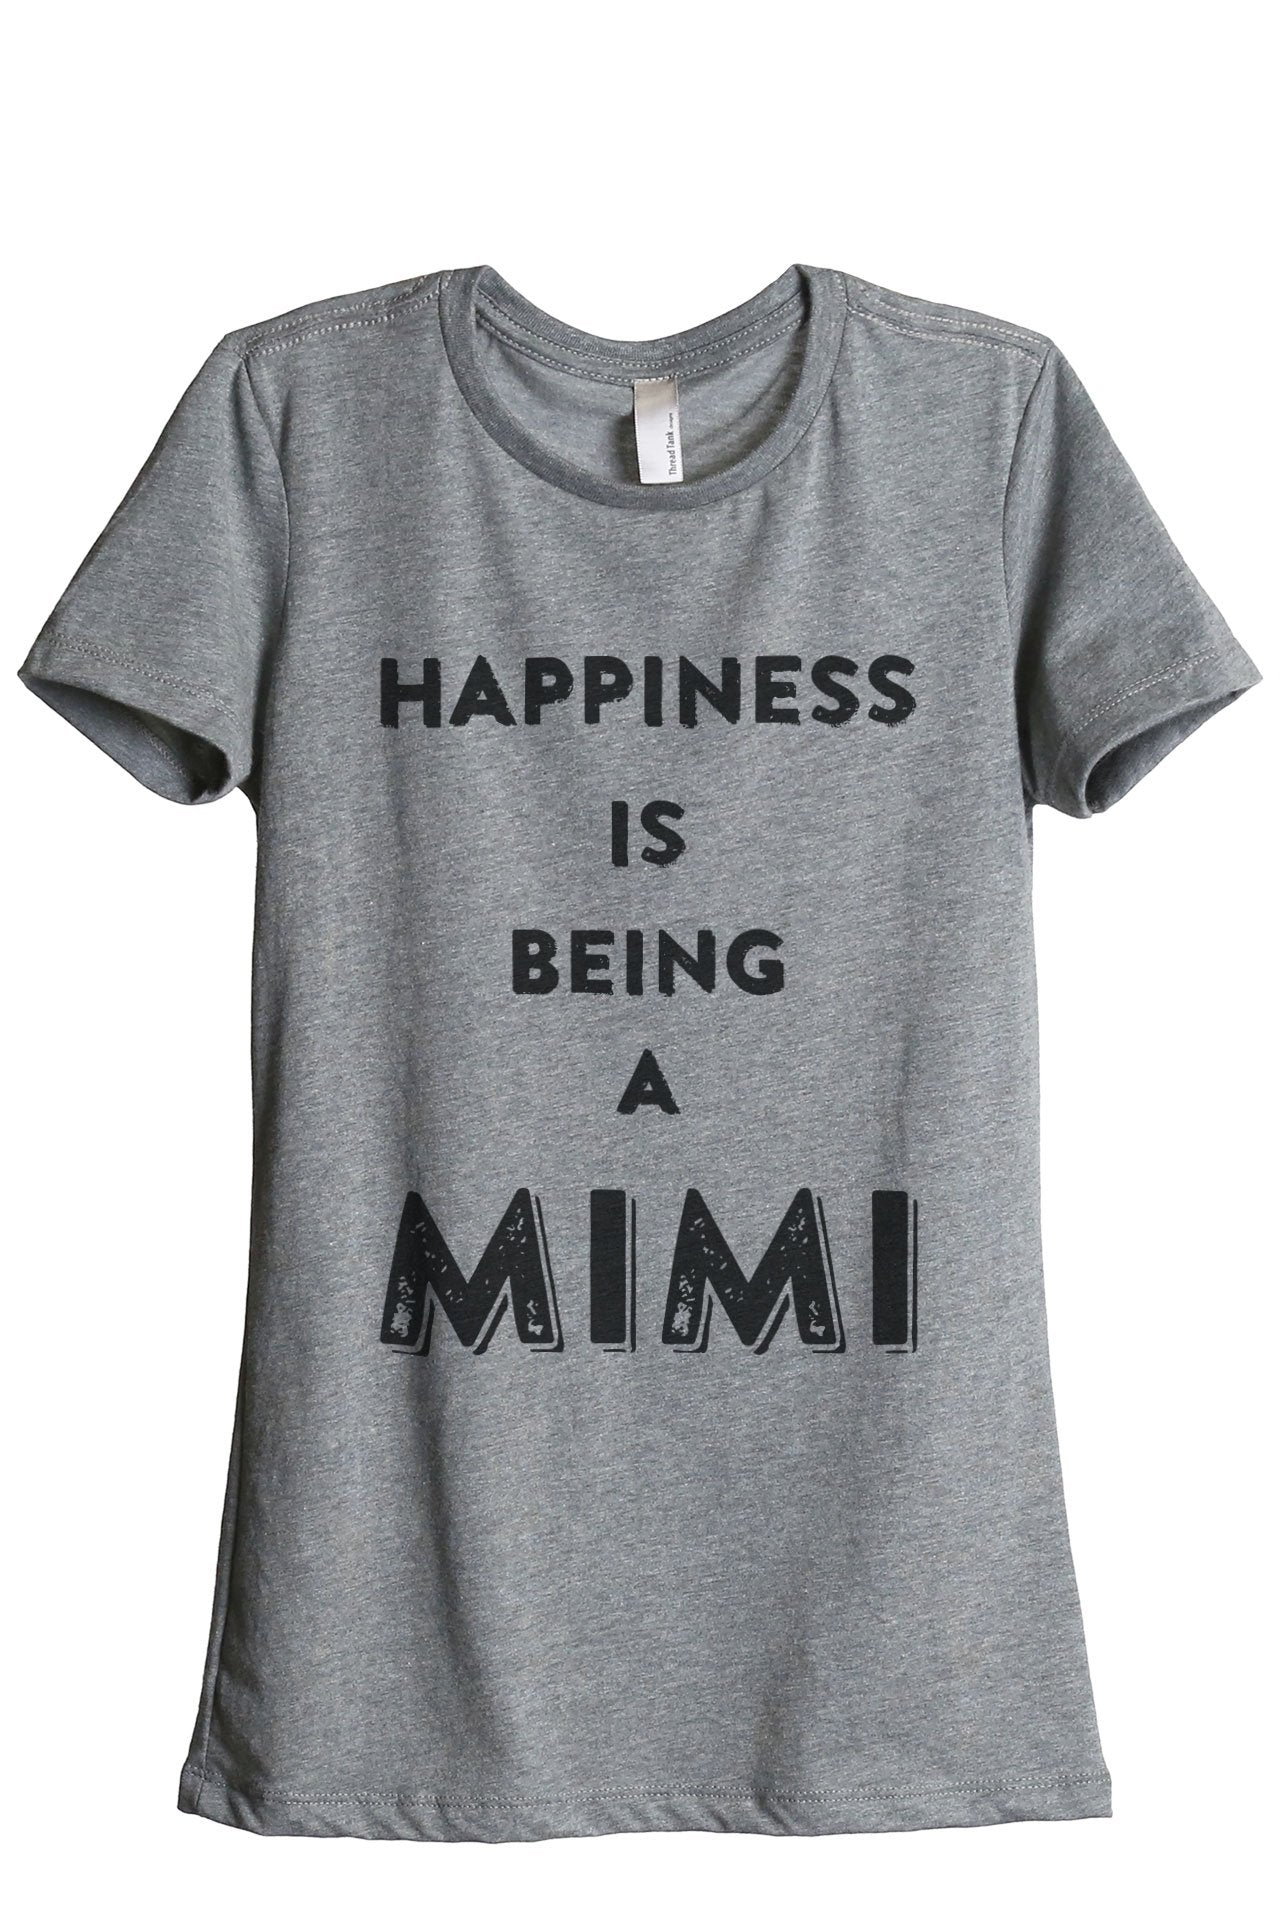 Happiness Is Being A Mimi Women Heather Grey Relaxed Crew T-Shirt Tee Top